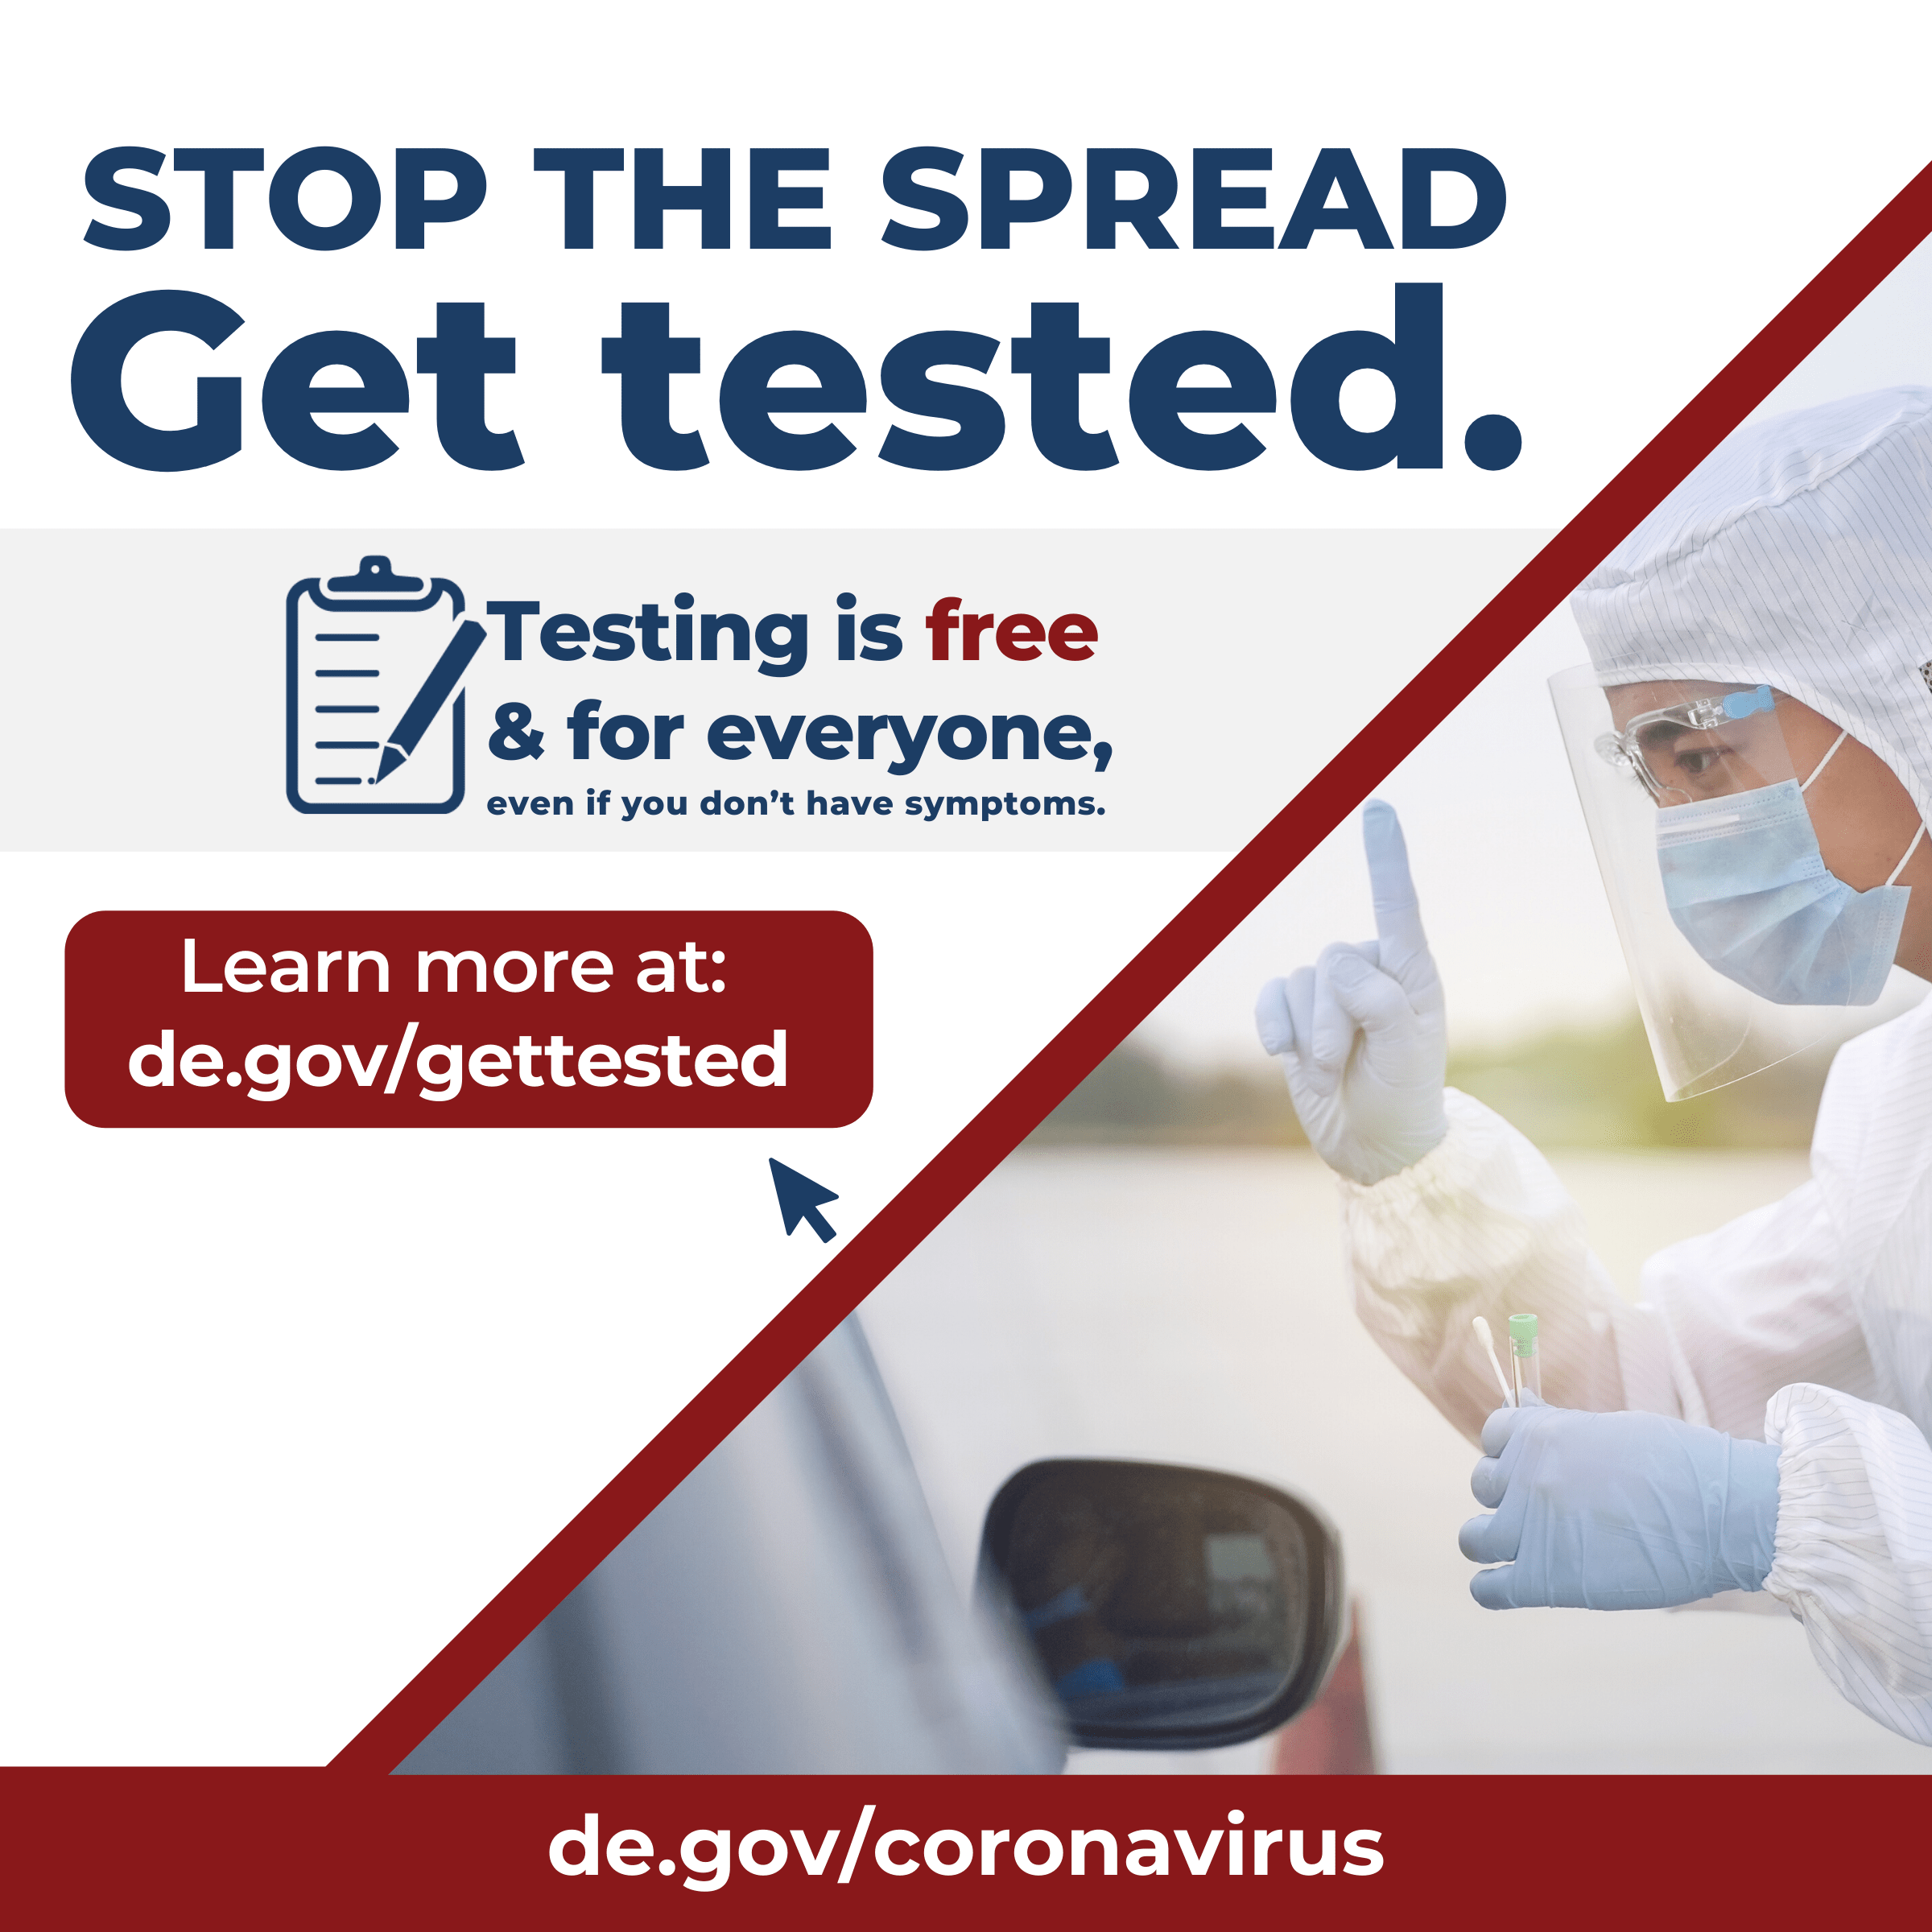 Stop the Spread - Get tested.